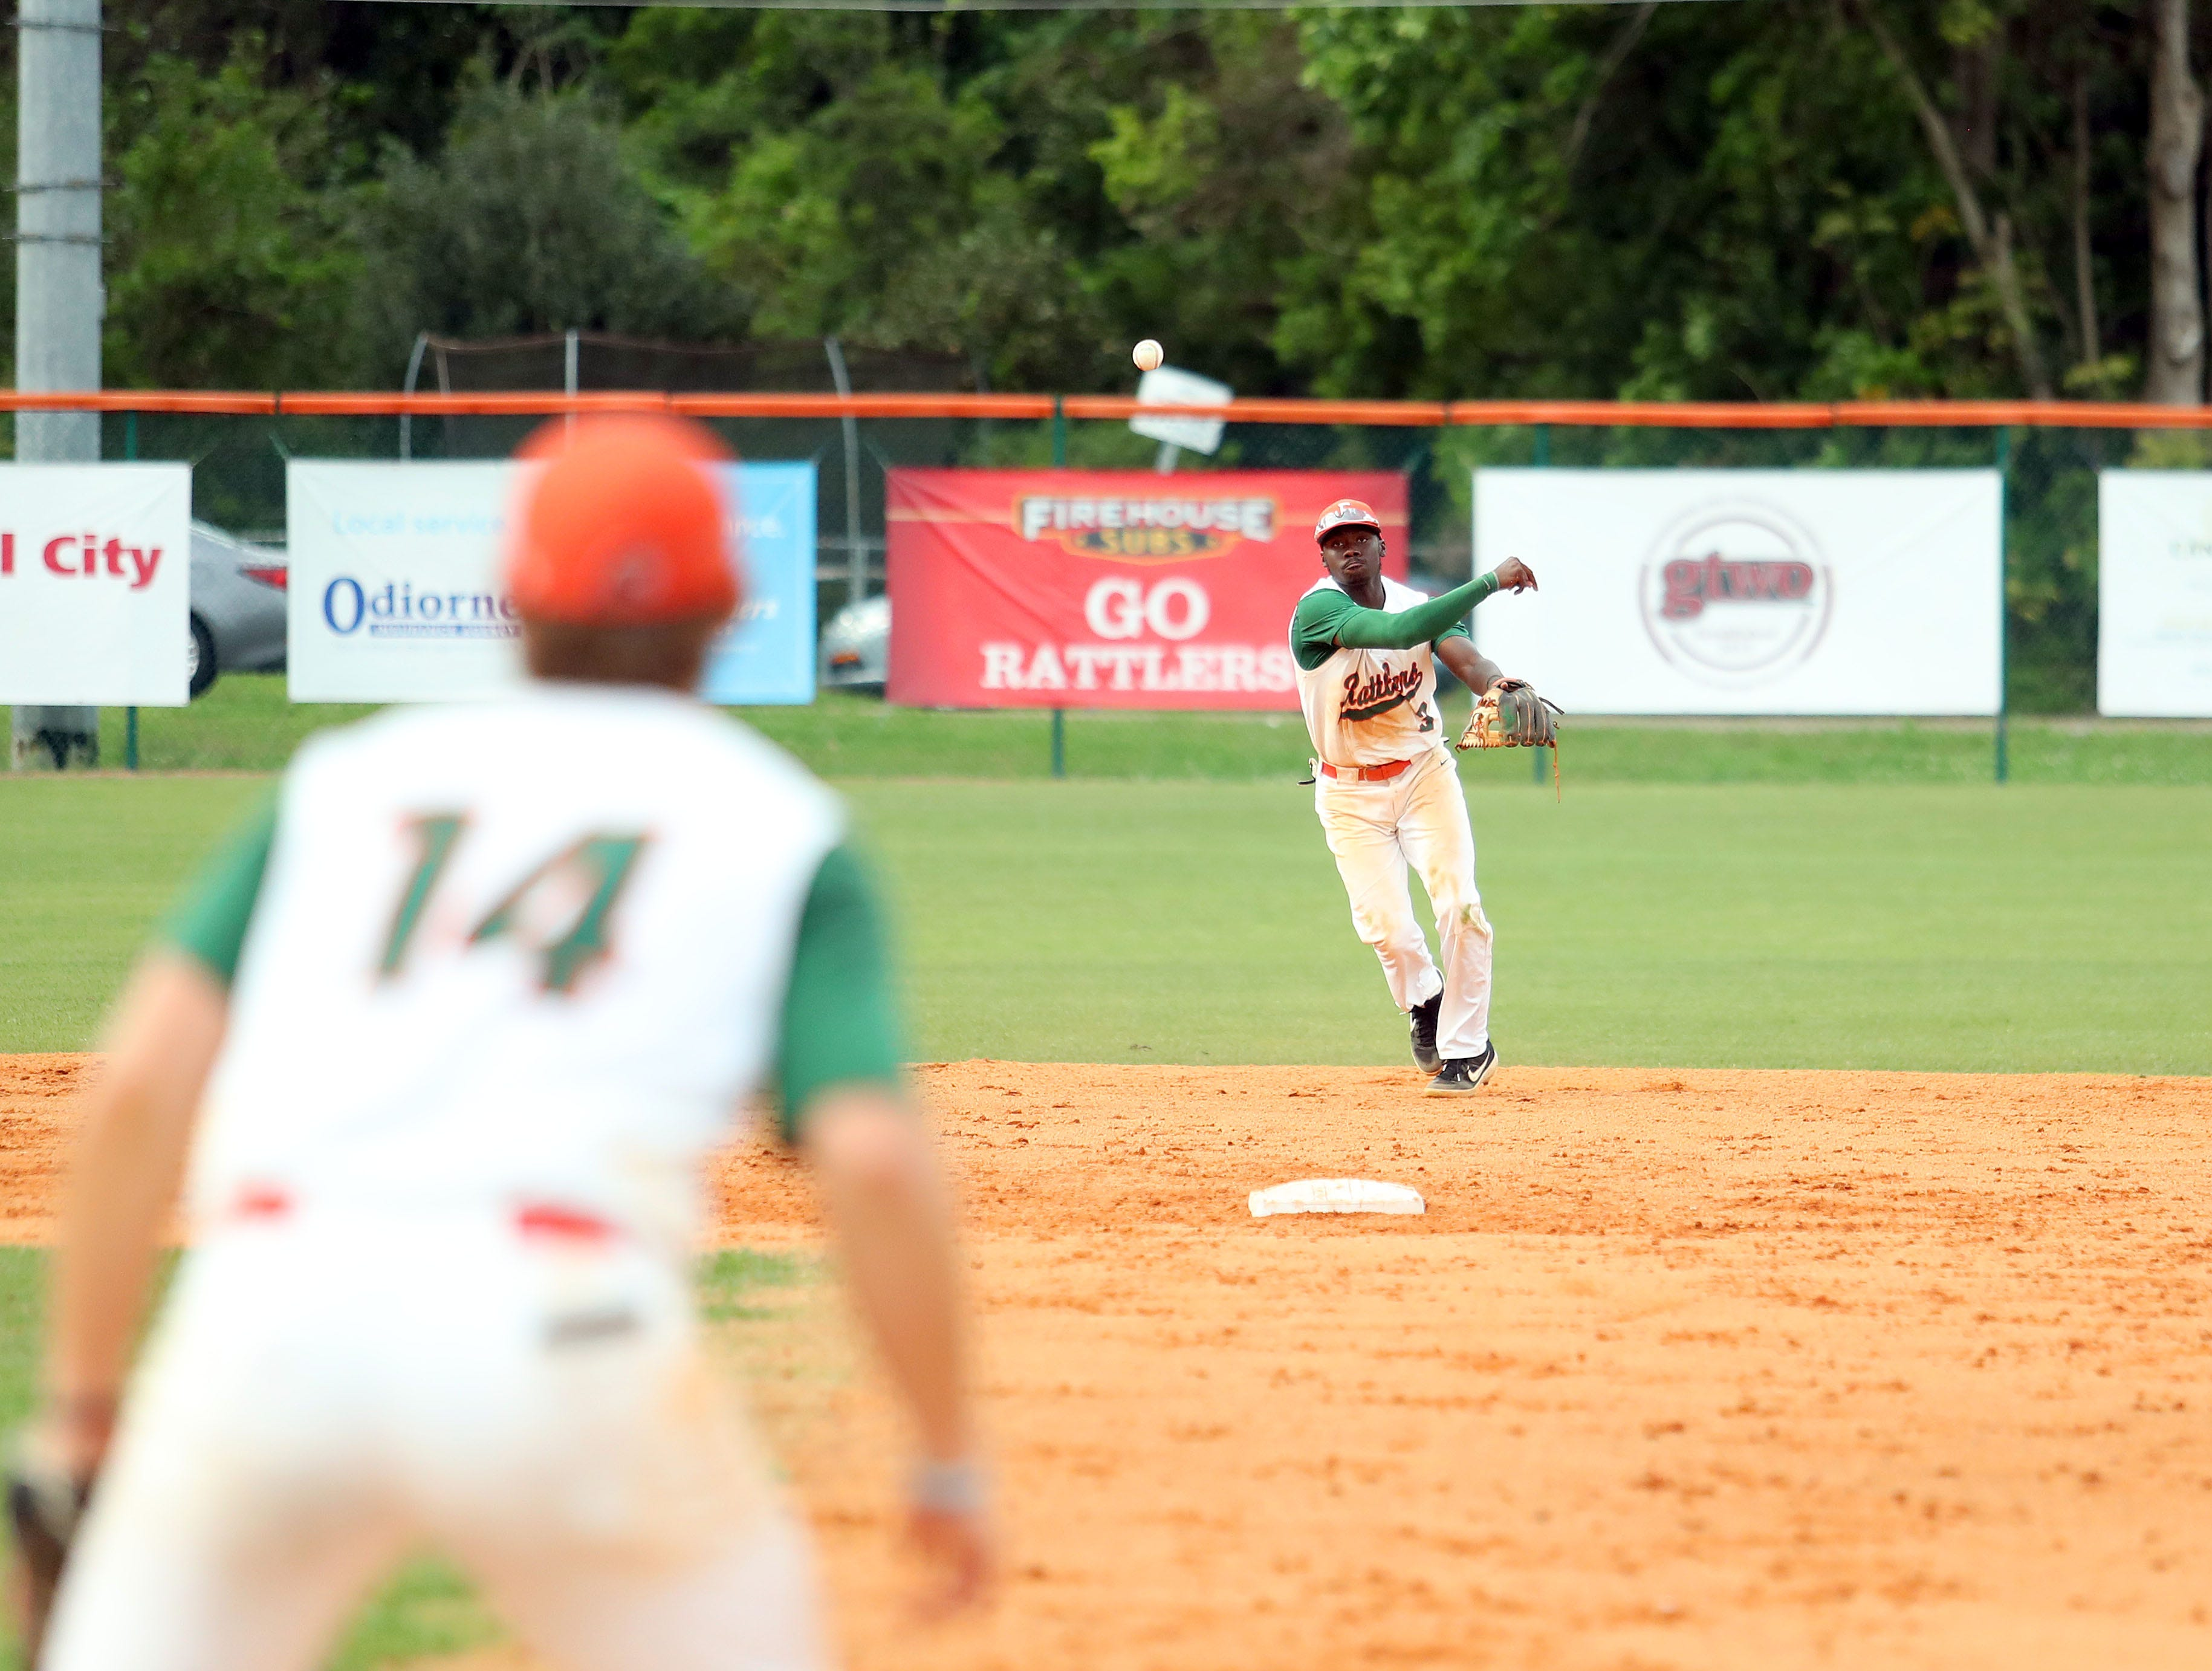 FAMU shortstop Robert Robinson throws out a runner in Game 2 of the doubleheader versus B-CU on Saturday, April 13, 2019.